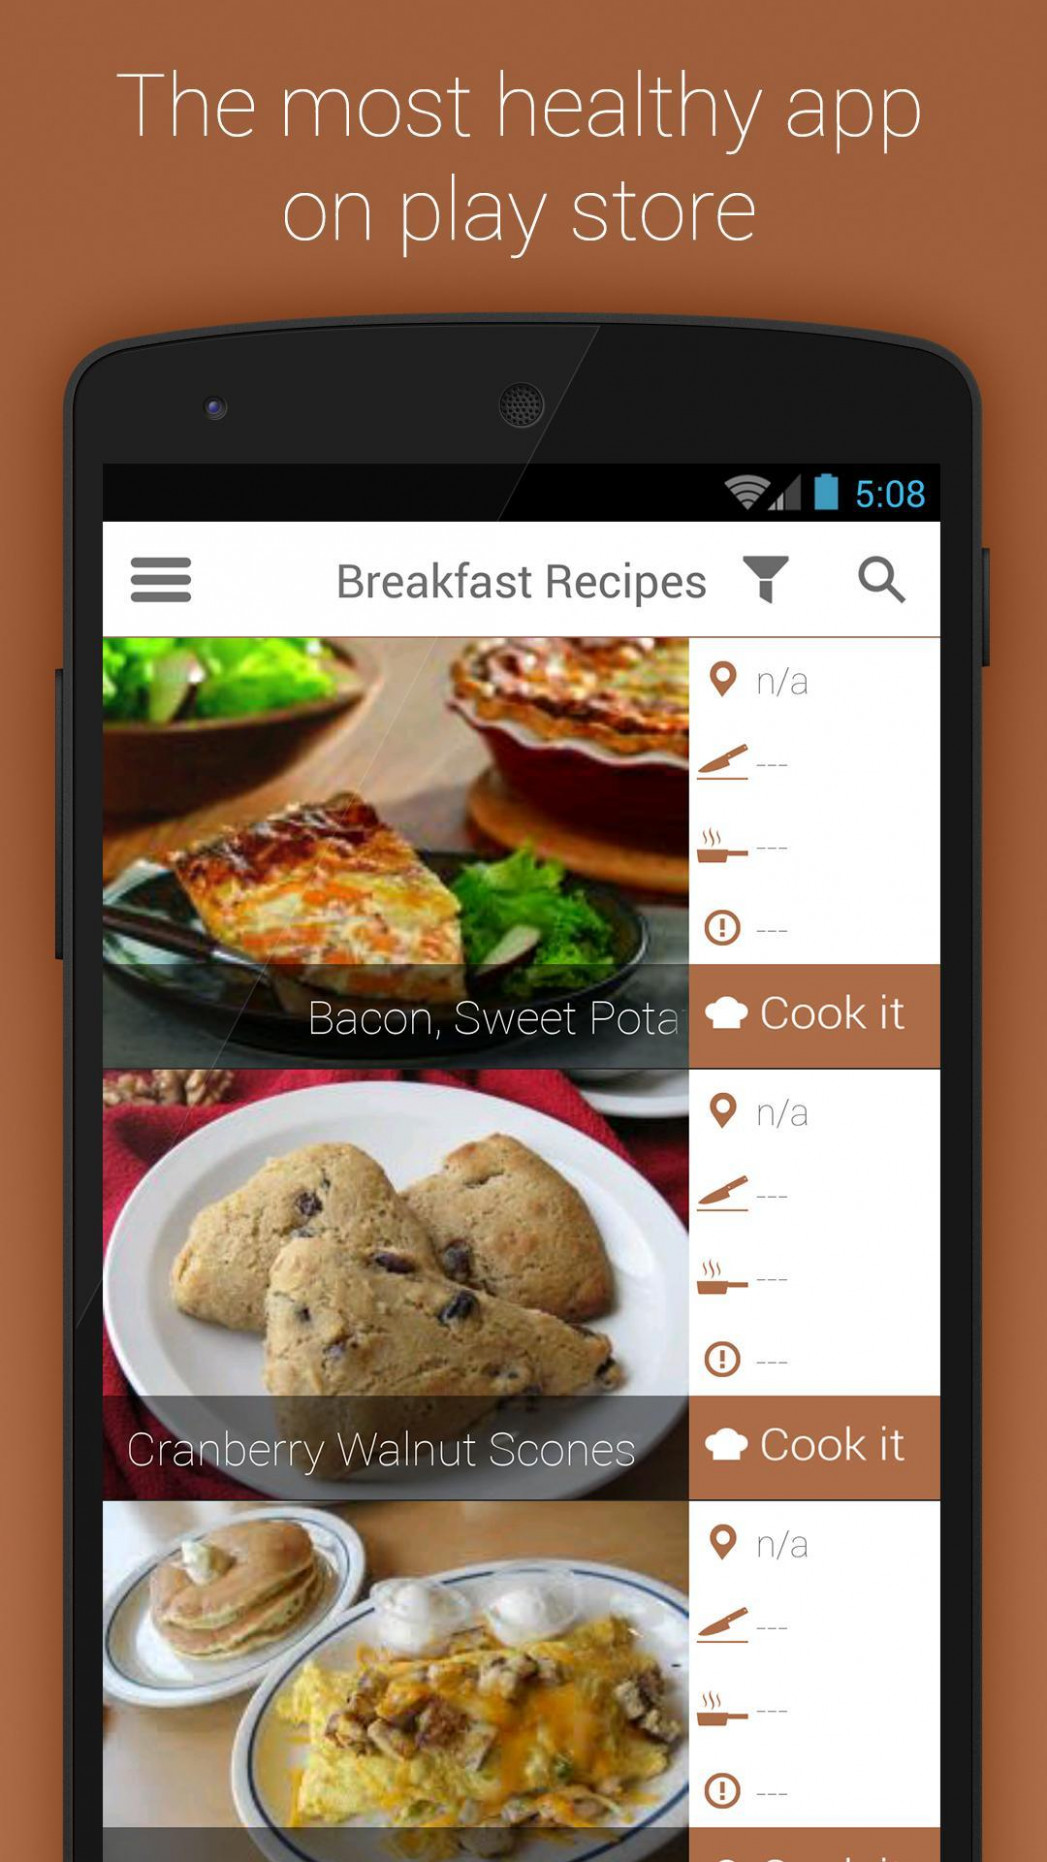 Organic Food Breakfast Recipes for Android - APK Download - organic food recipes